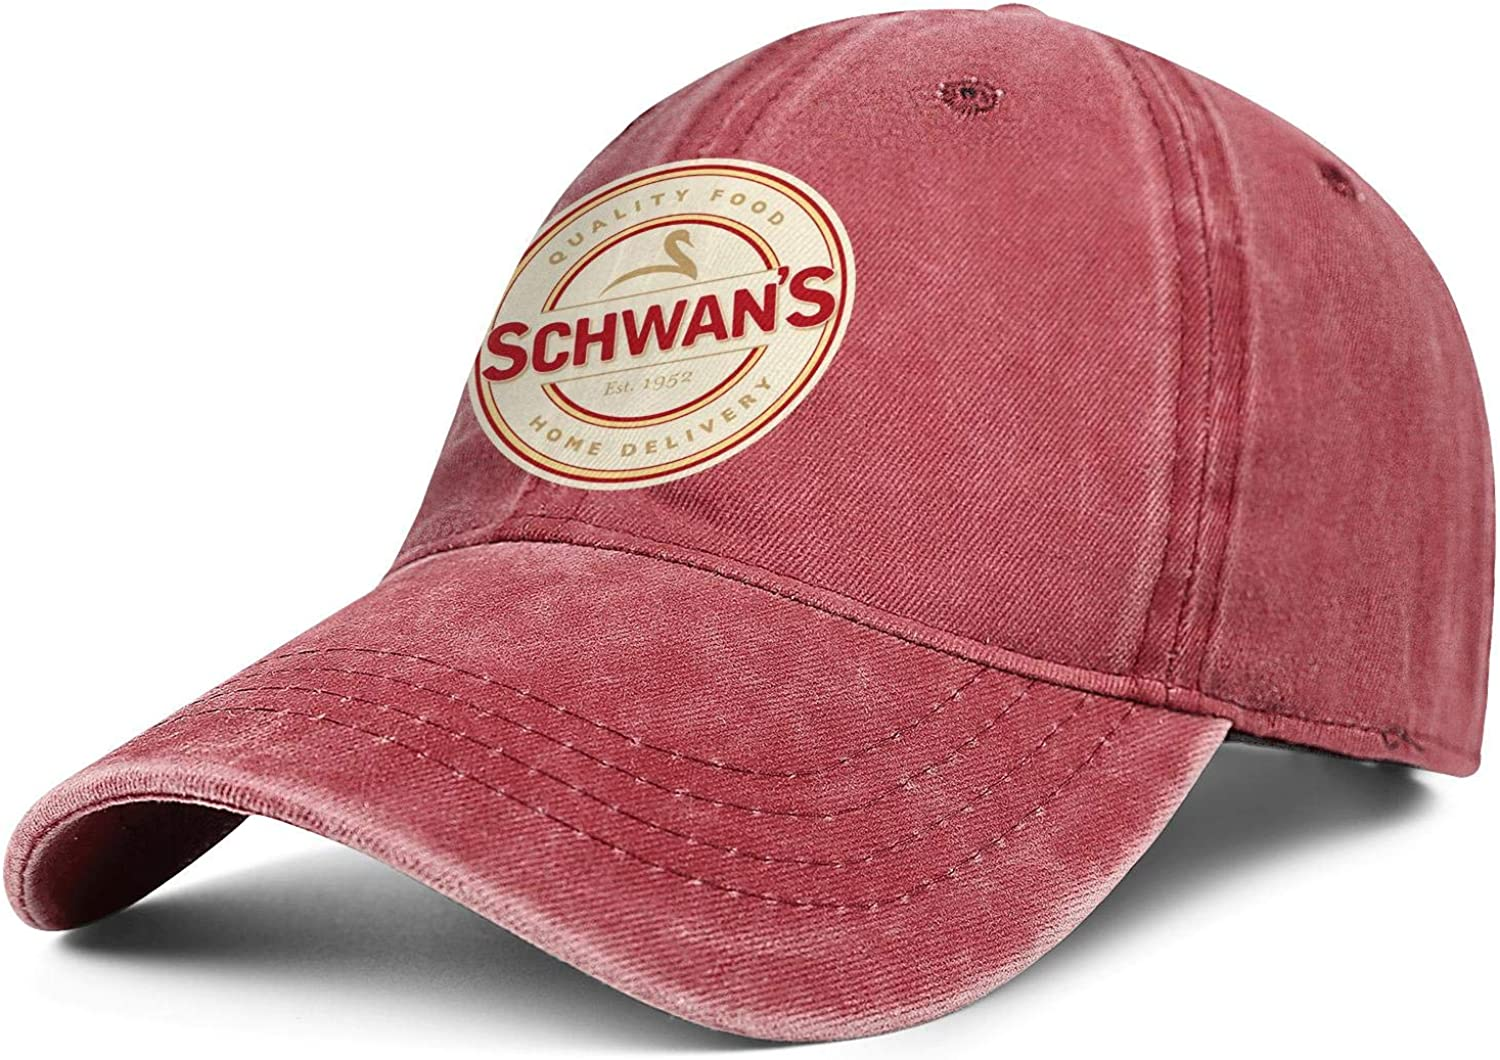 Schwans-Logo Snapback Trucker Denim Cap Top Level Hats Relaxed Hat